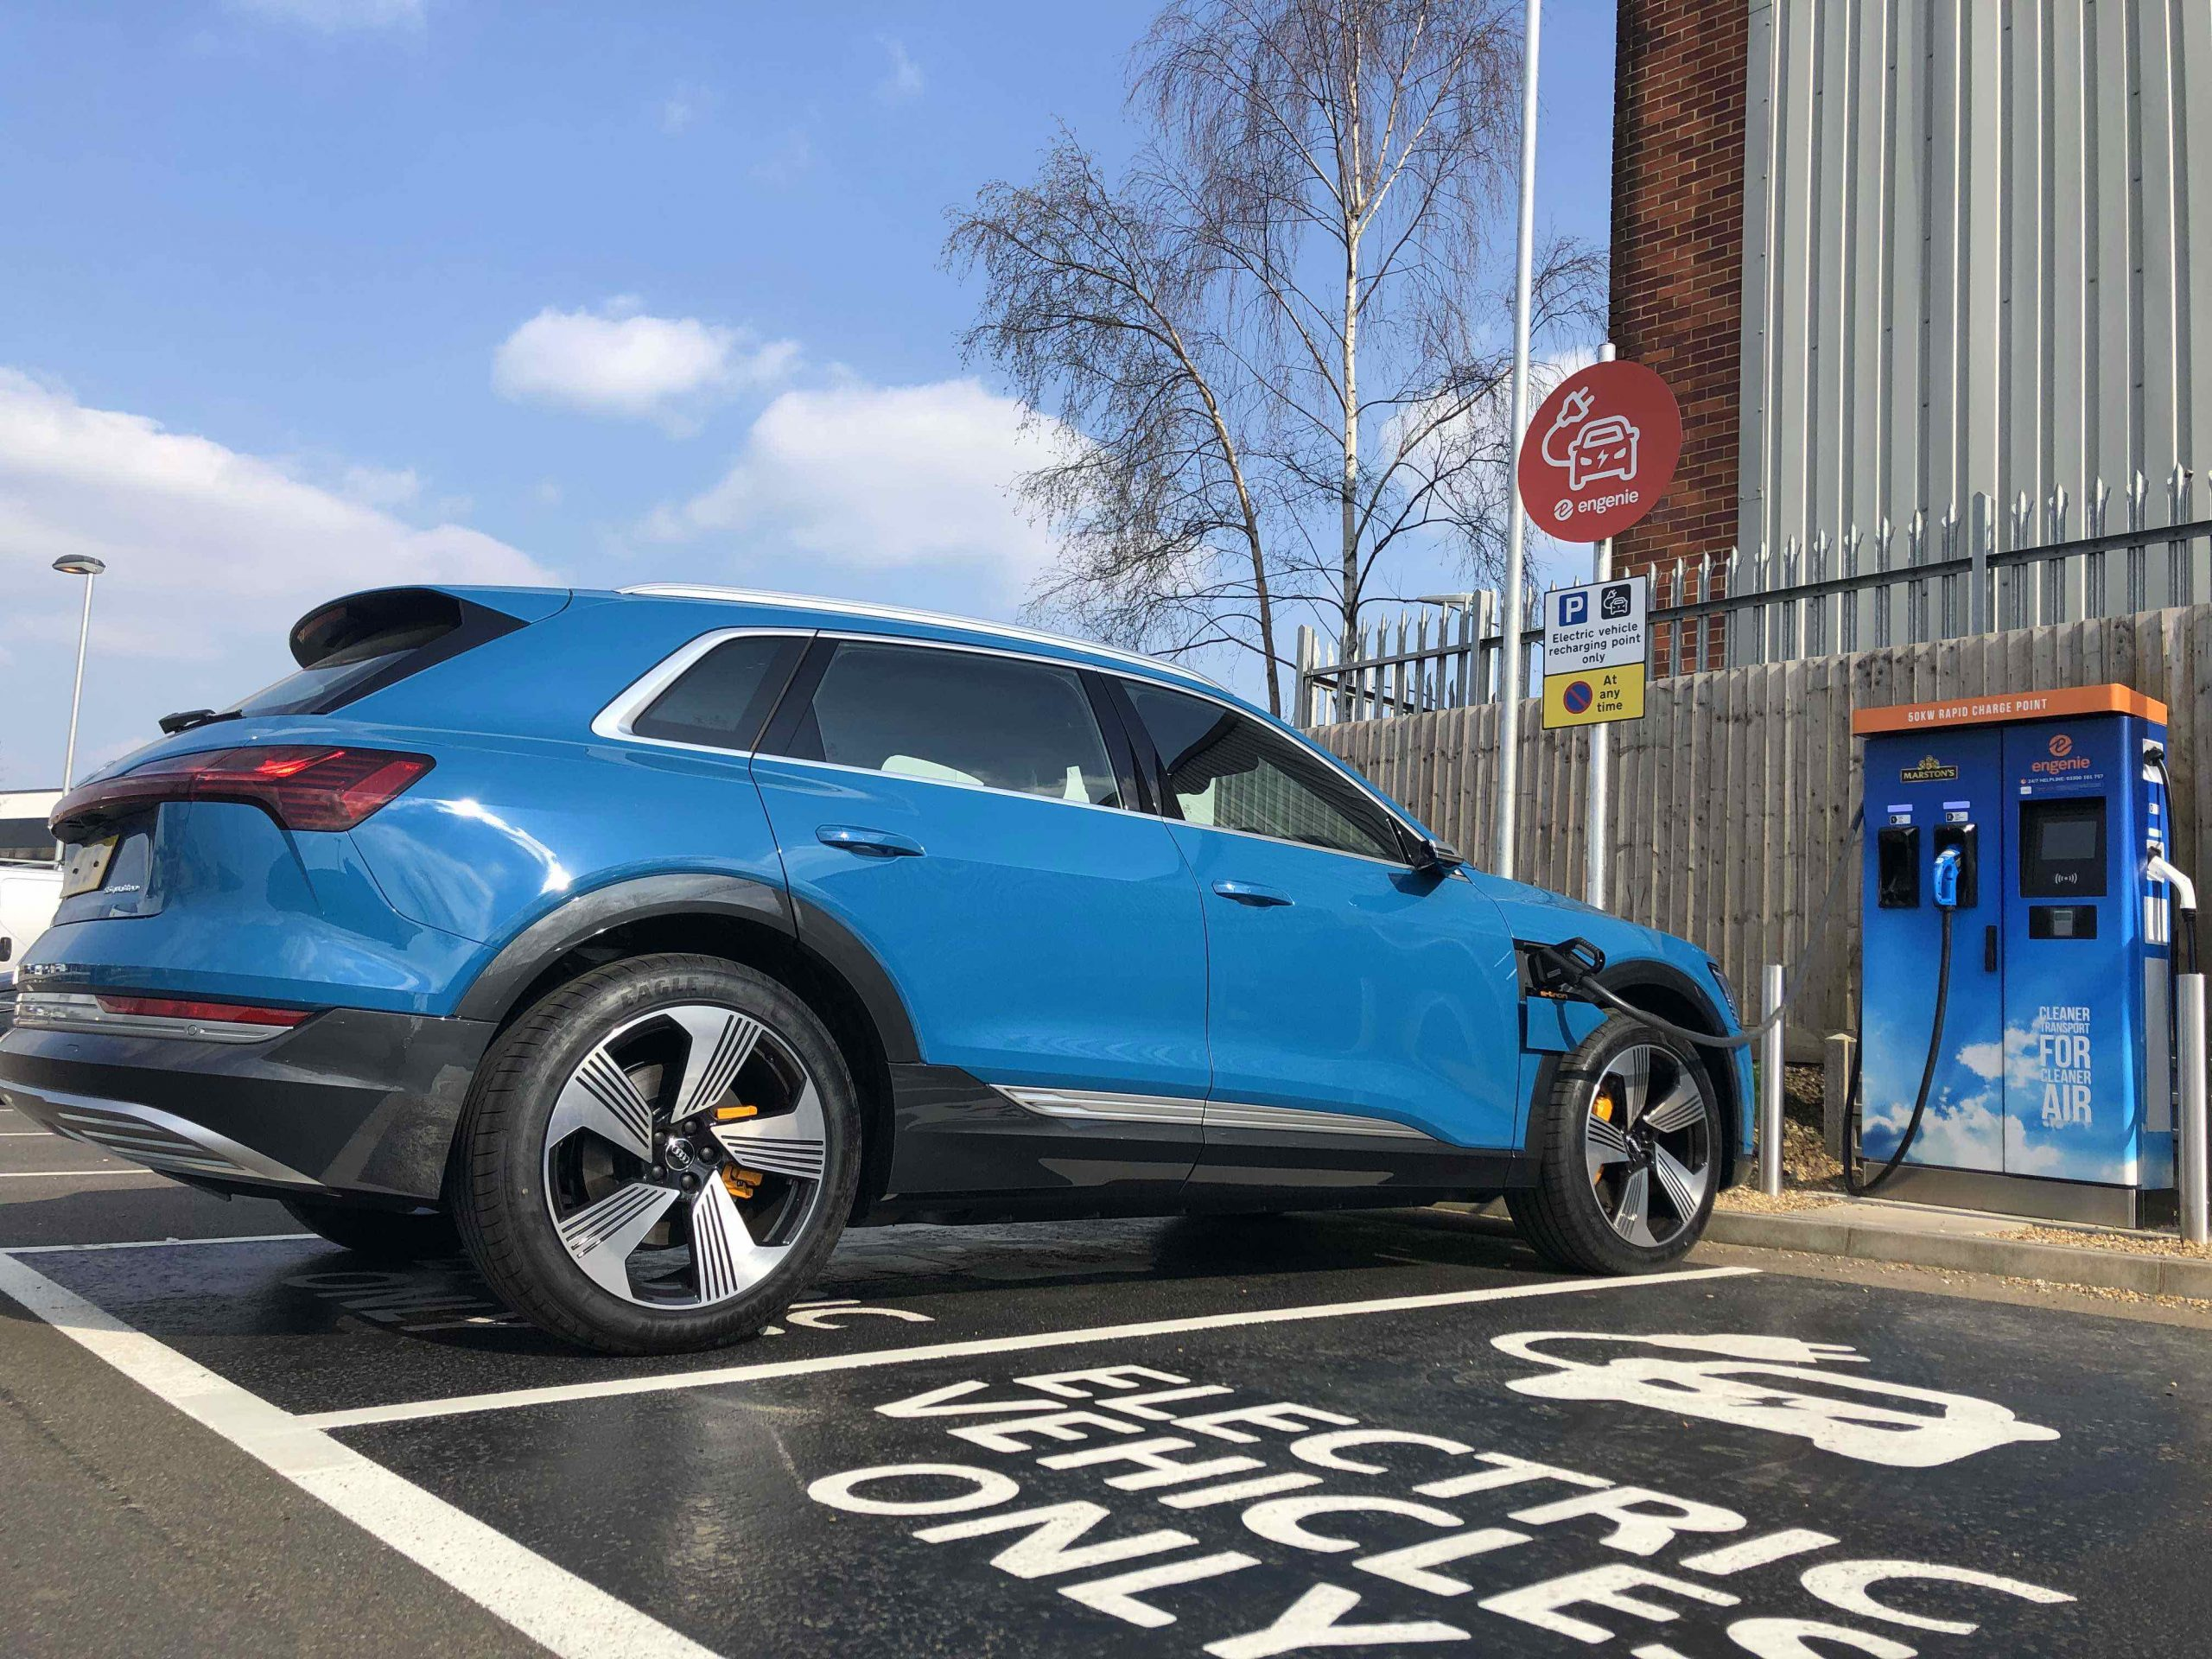 Will the government ban new petrol and diesel cars in 2030?